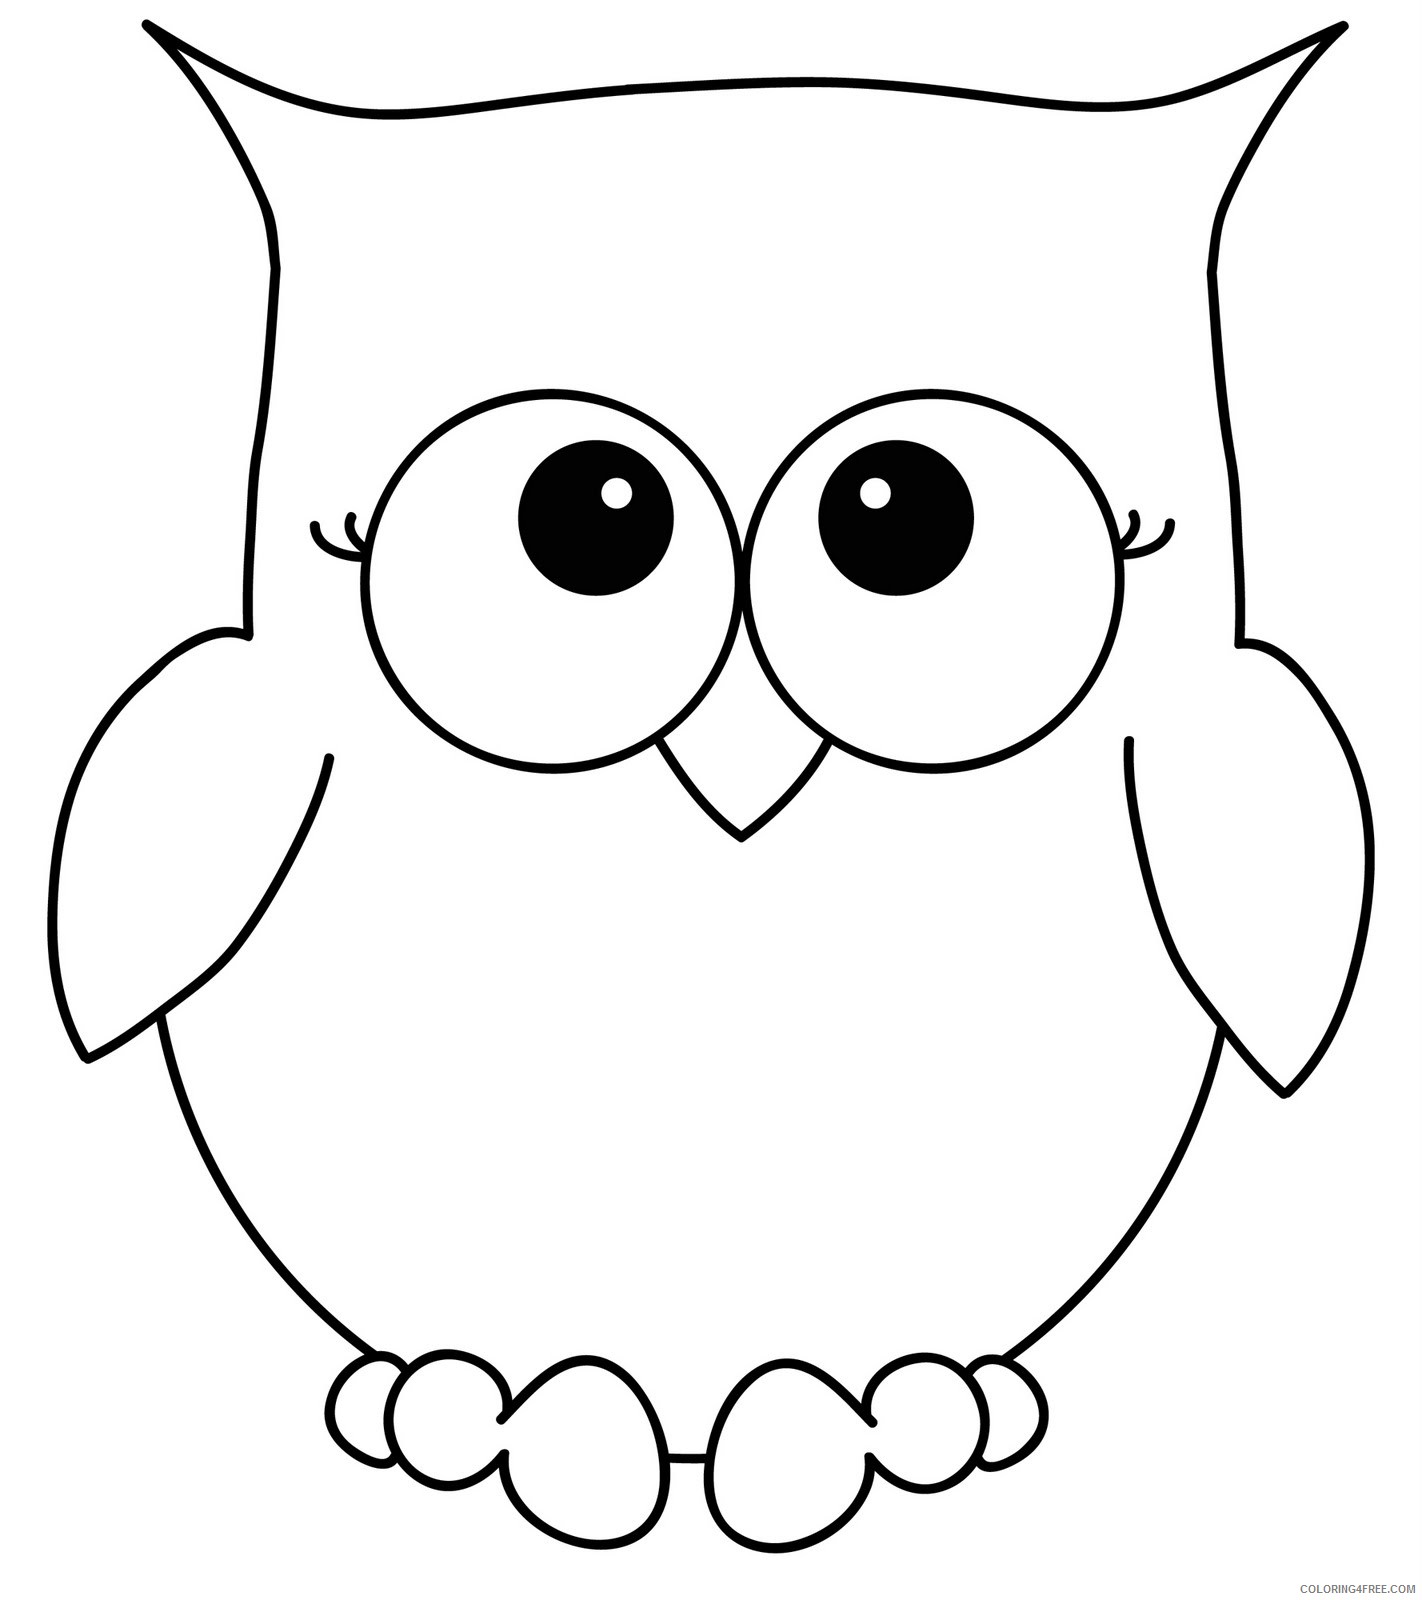 Owl Outline Coloring Pages lost in paper scraps free Printable Coloring4free